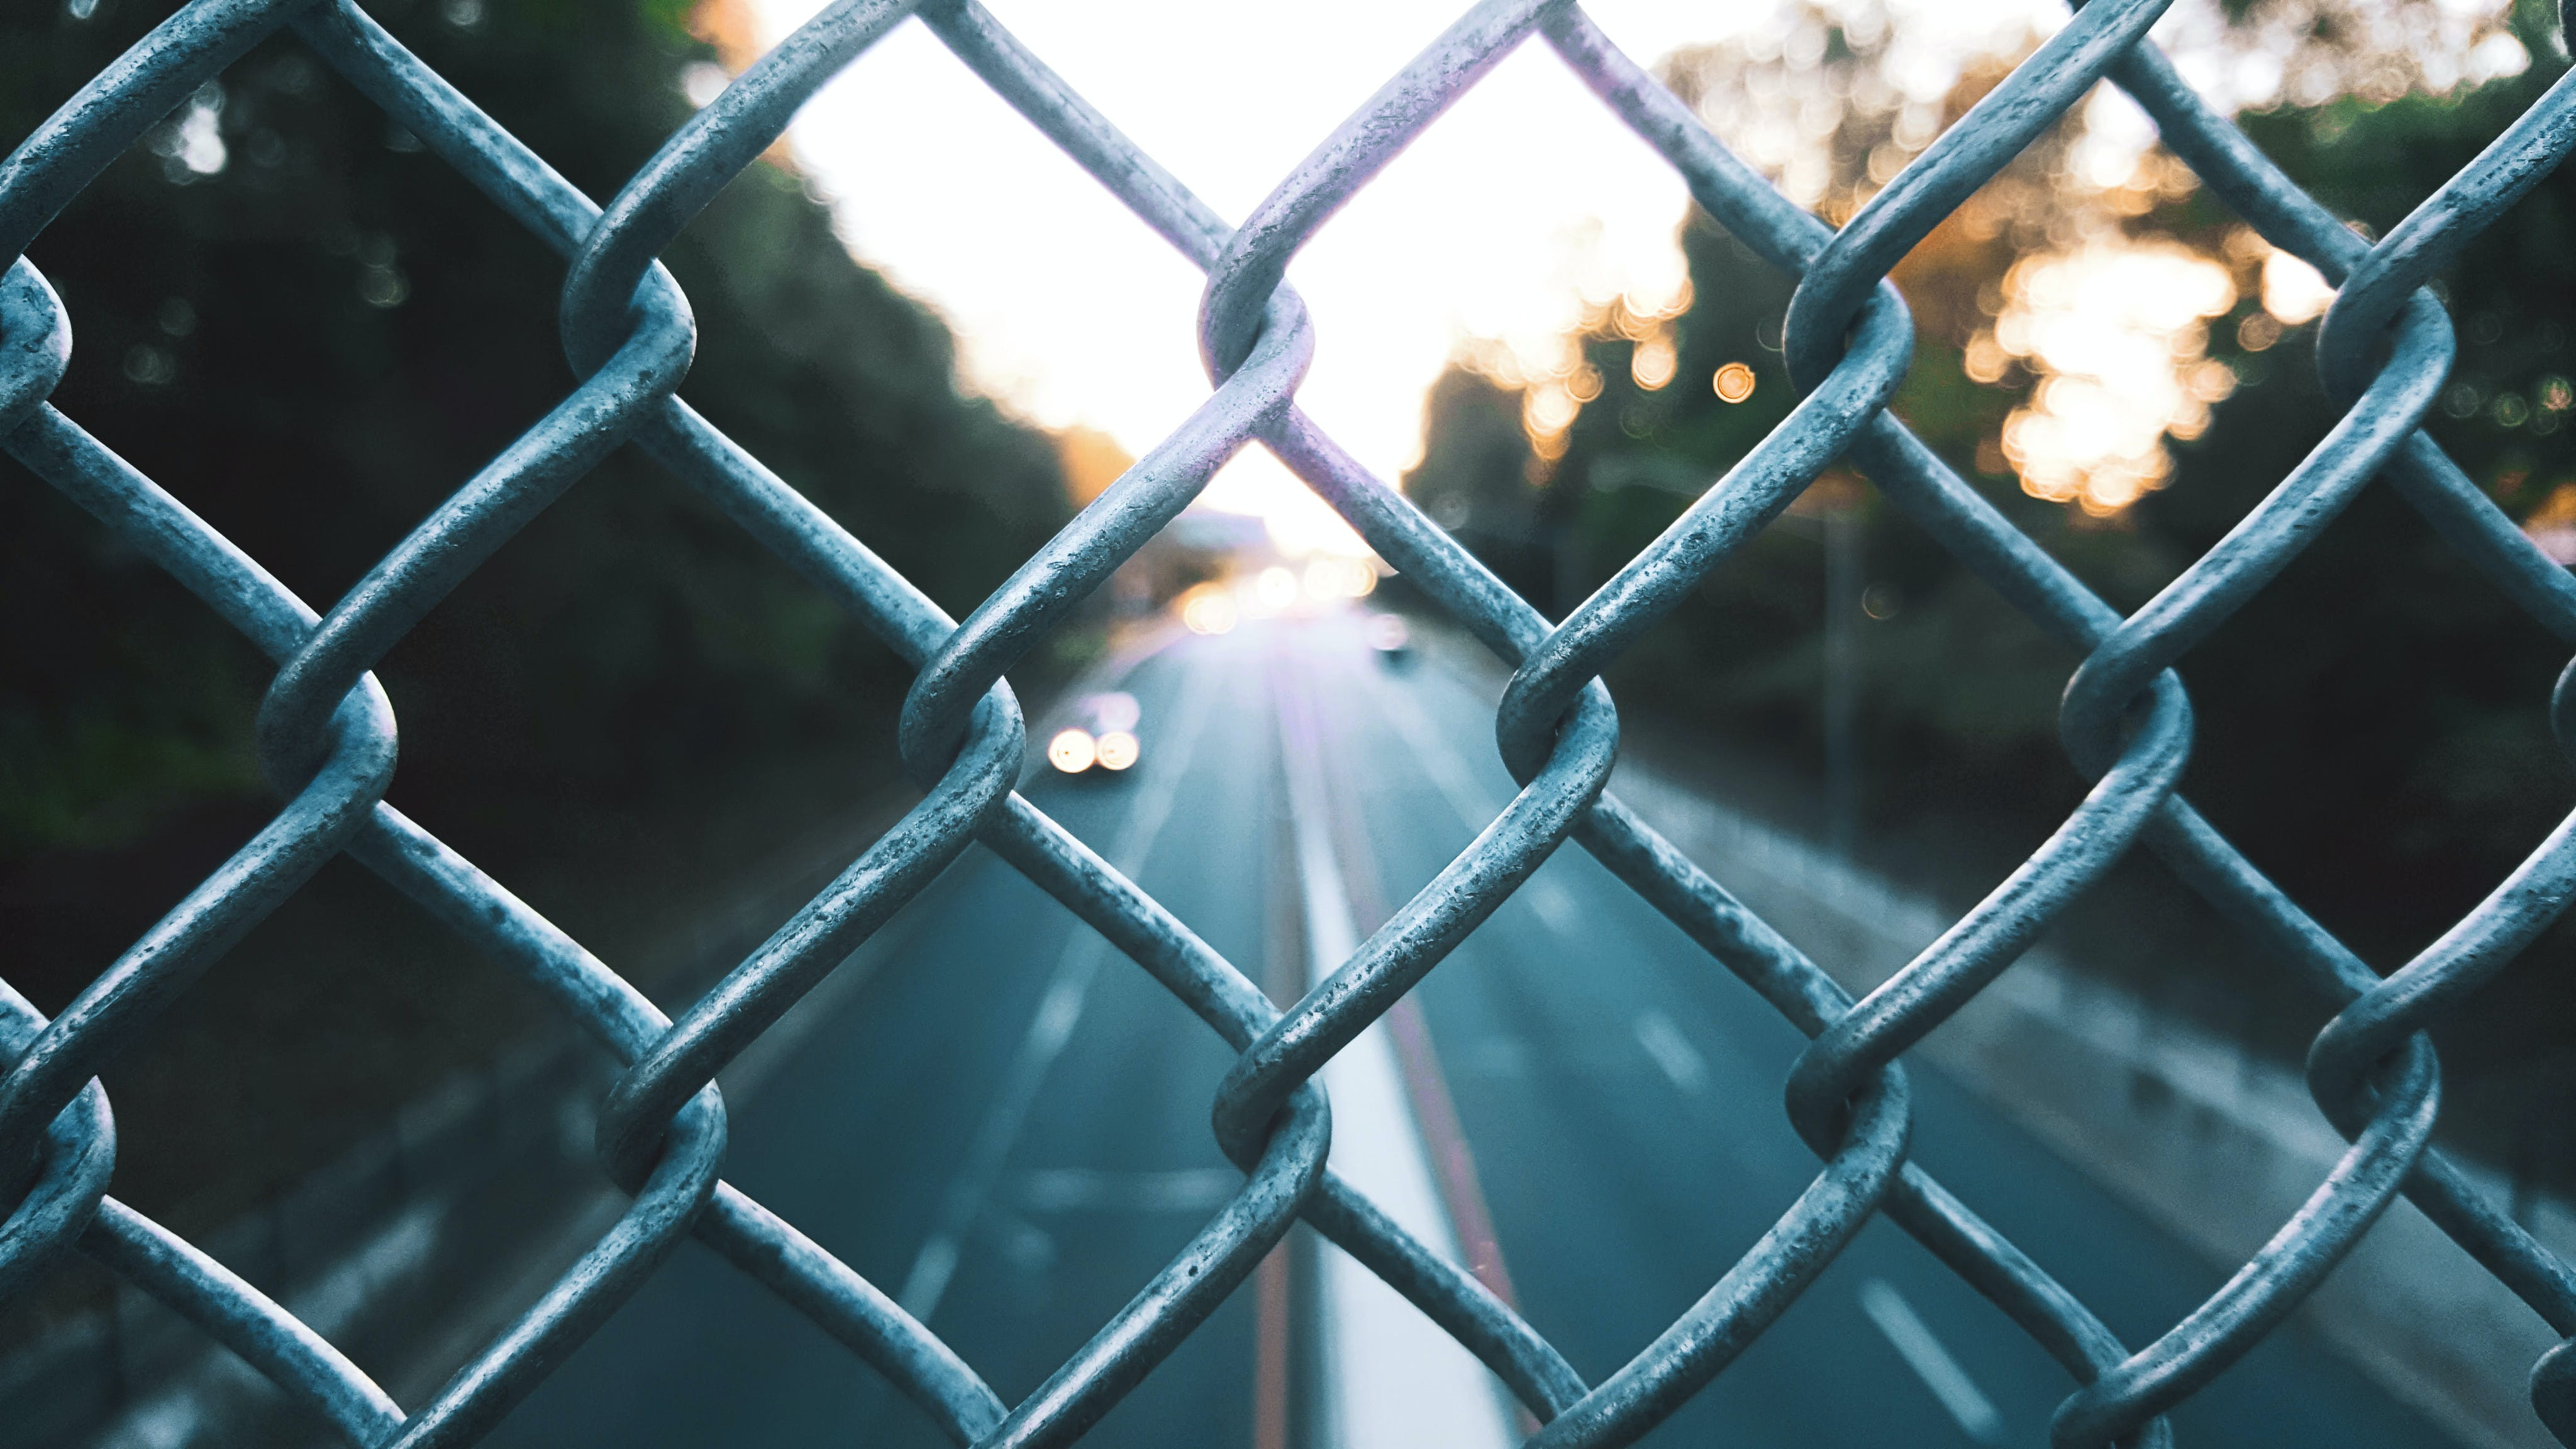 Close Up Photography of Chain Link Screen